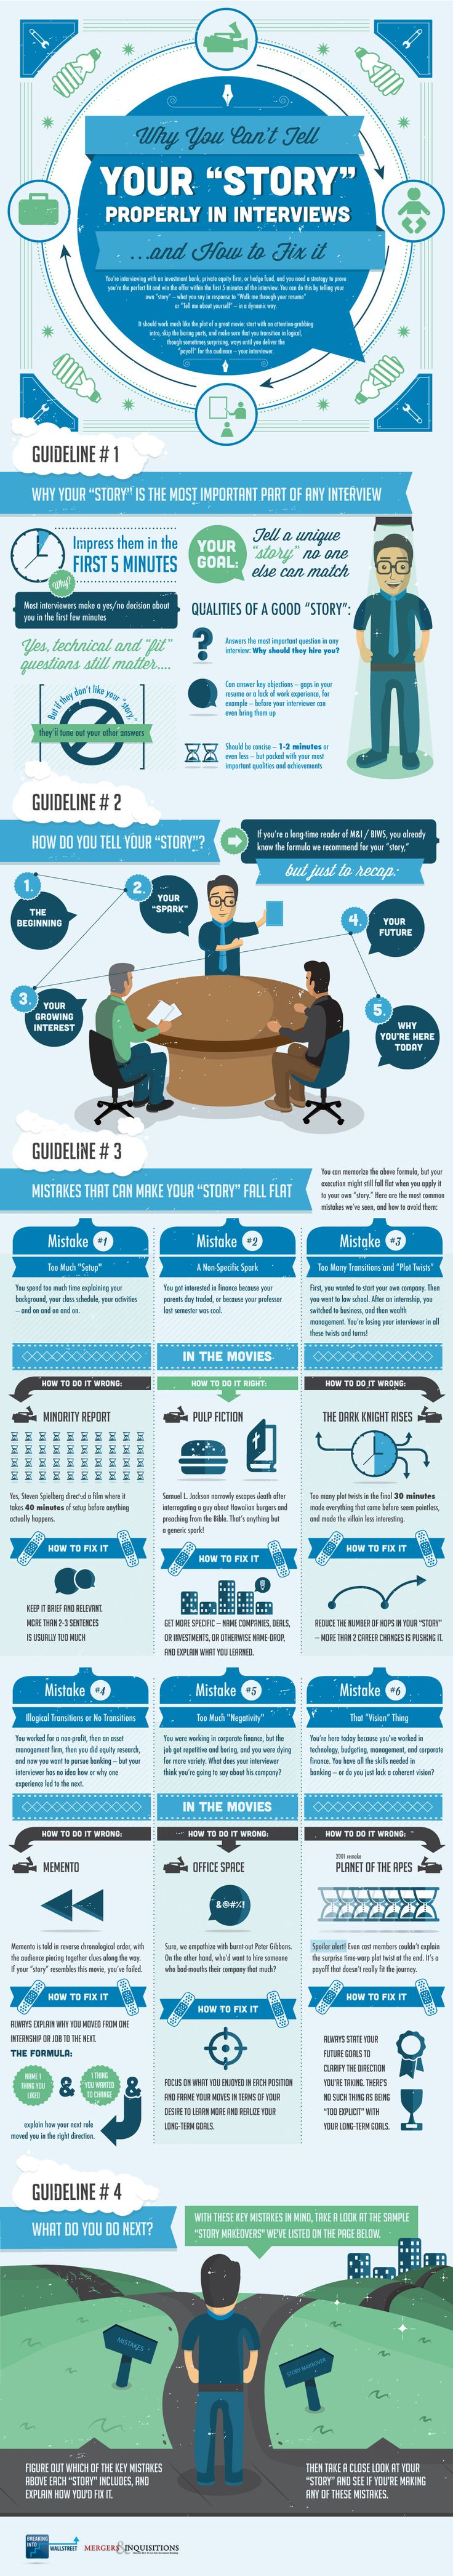 The 30 Best Tips to Prepare for an Interview - The Muse